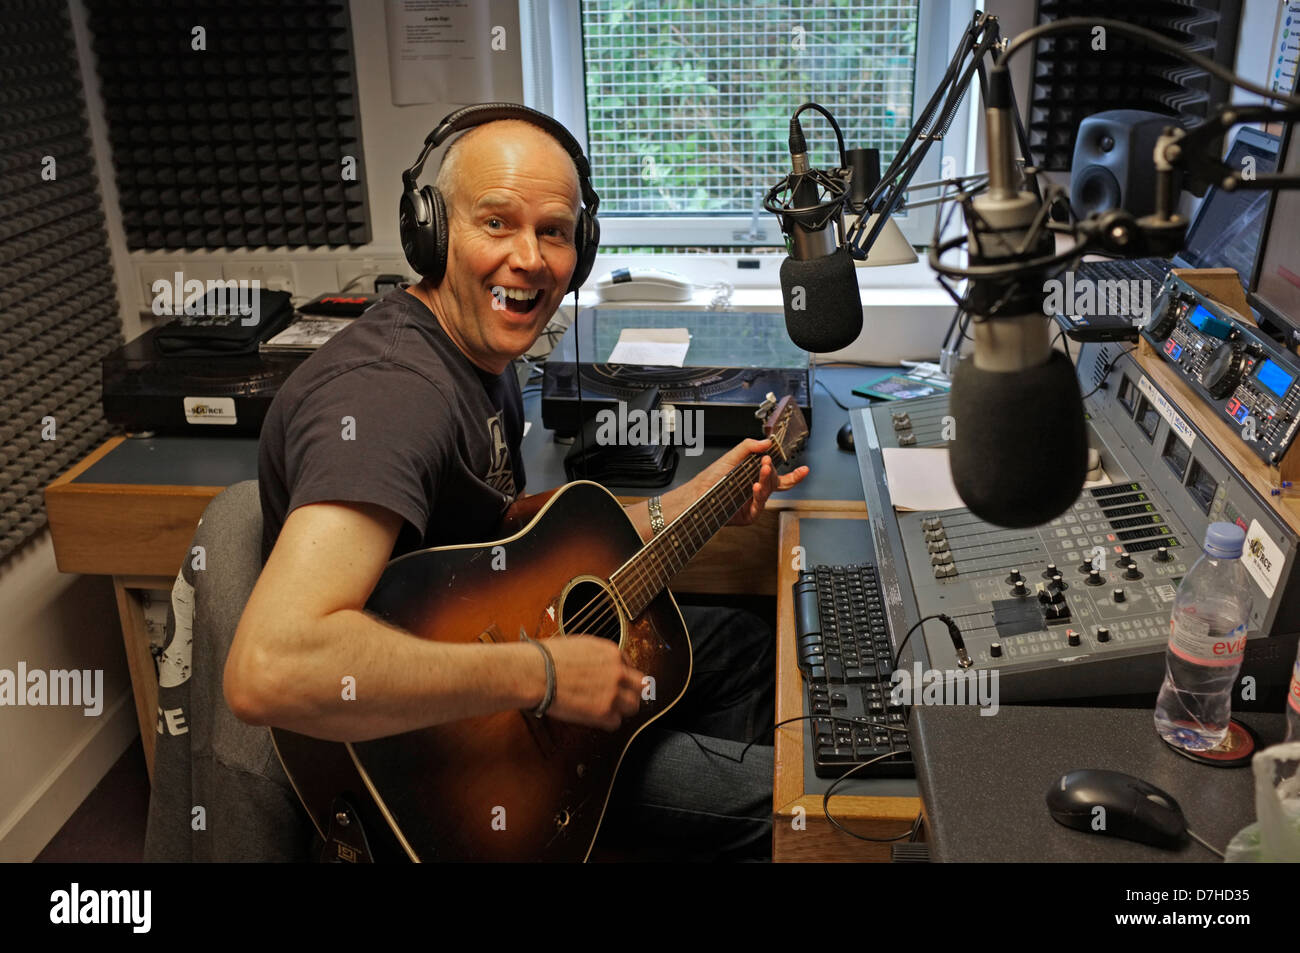 A local radio DJ plays the guitar on his show at The Source 96.1 FM which broadcasts to Falmouth & surrounding - Stock Image